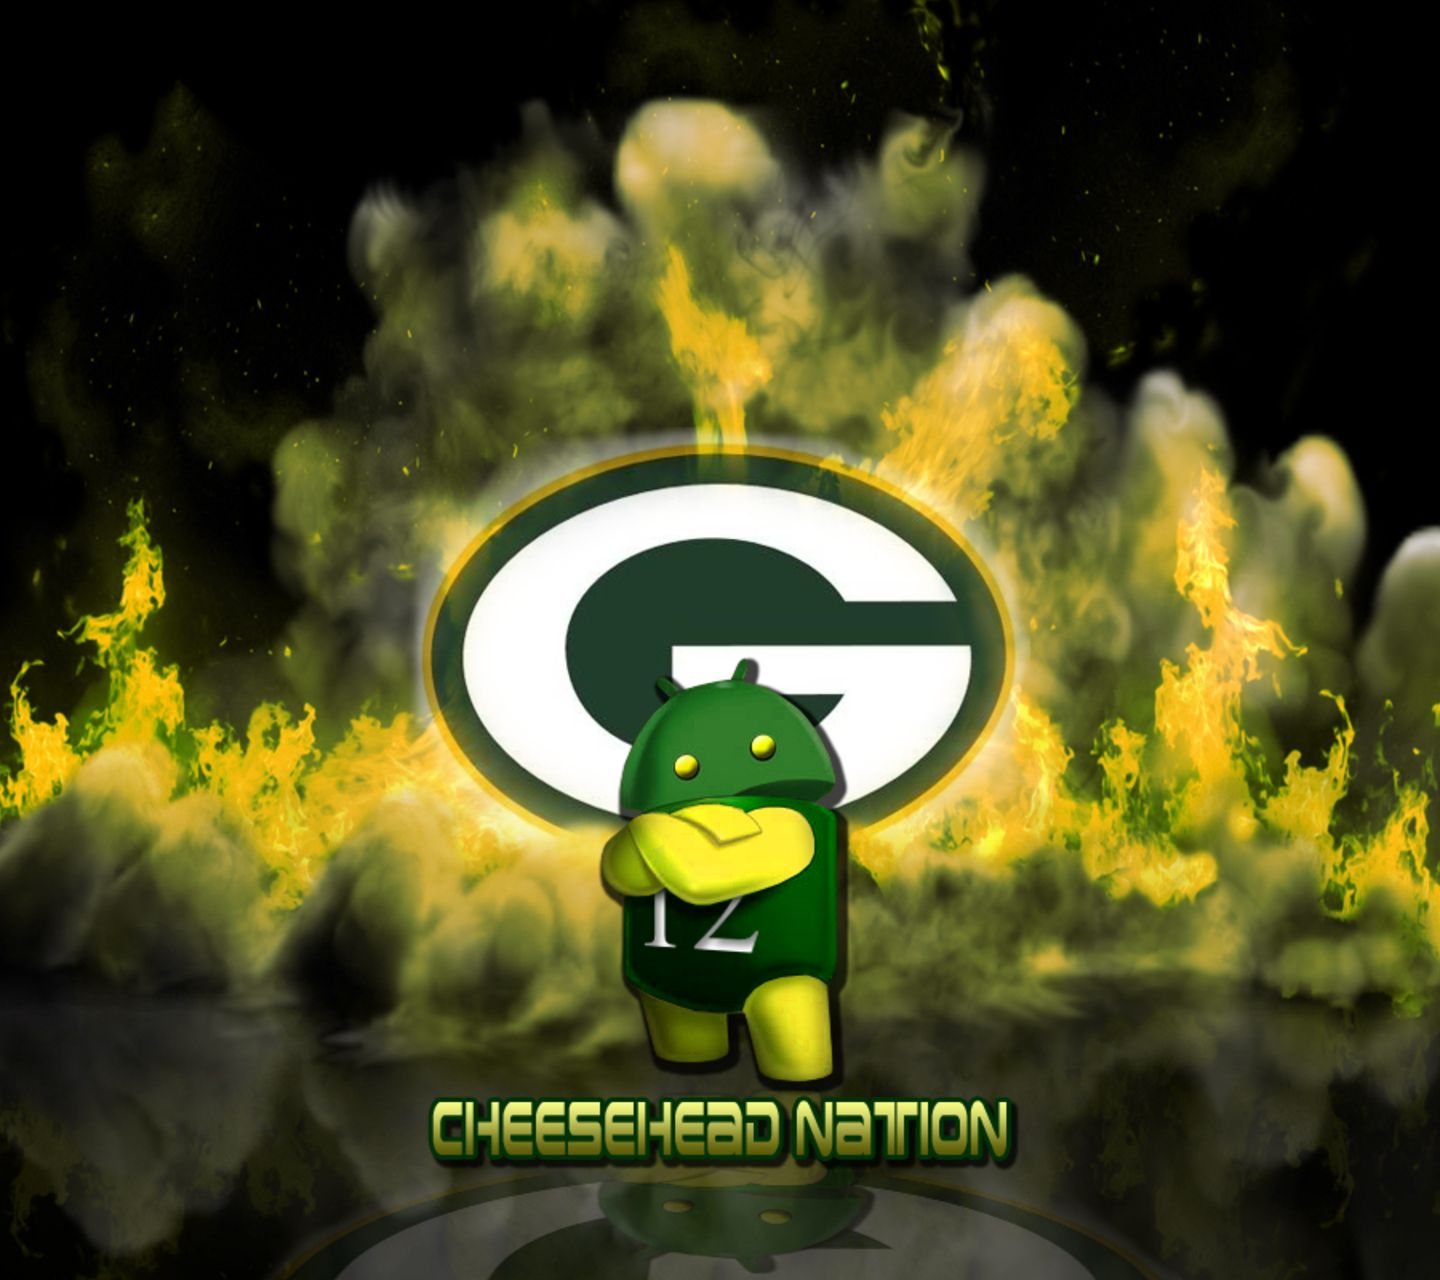 The Galaxy S3 Wallpaper I Just Pinned Green Bay Packers Wallpaper Green Bay Packers Green Bay